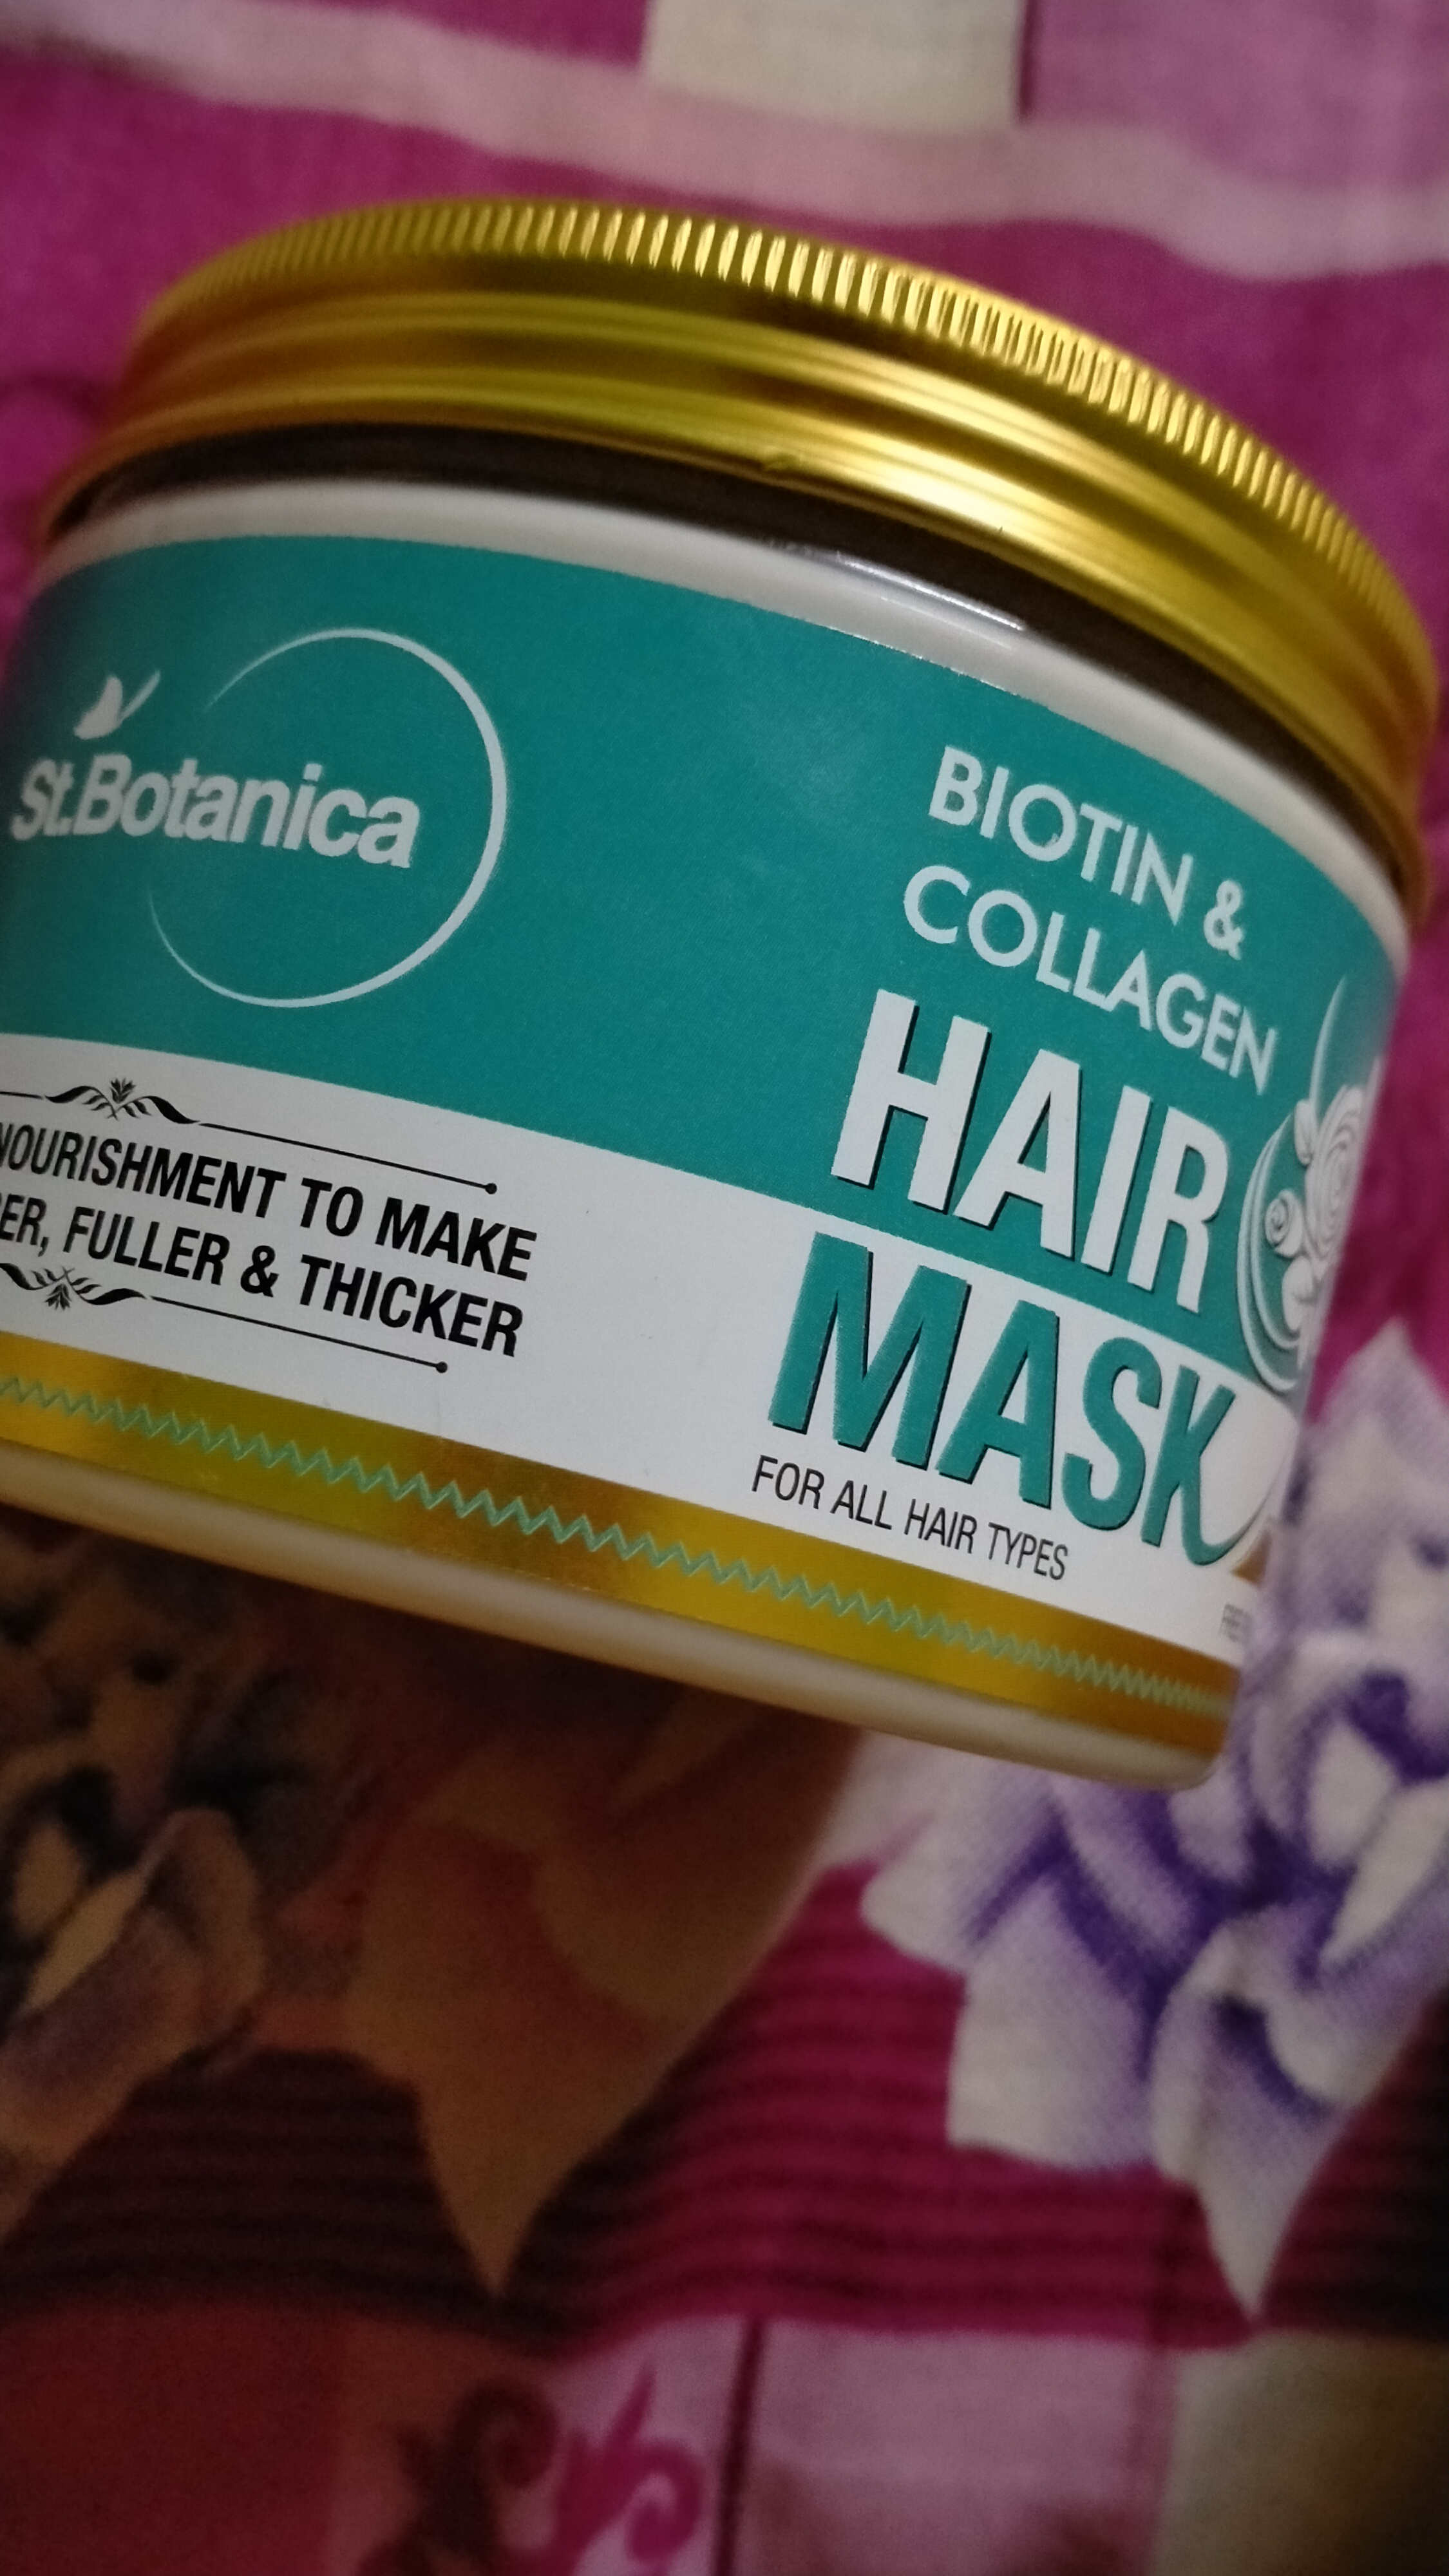 St.Botanica Biotin & Collagen Hair Mask-Makes the hair straight instantly-By _dazzling_diva